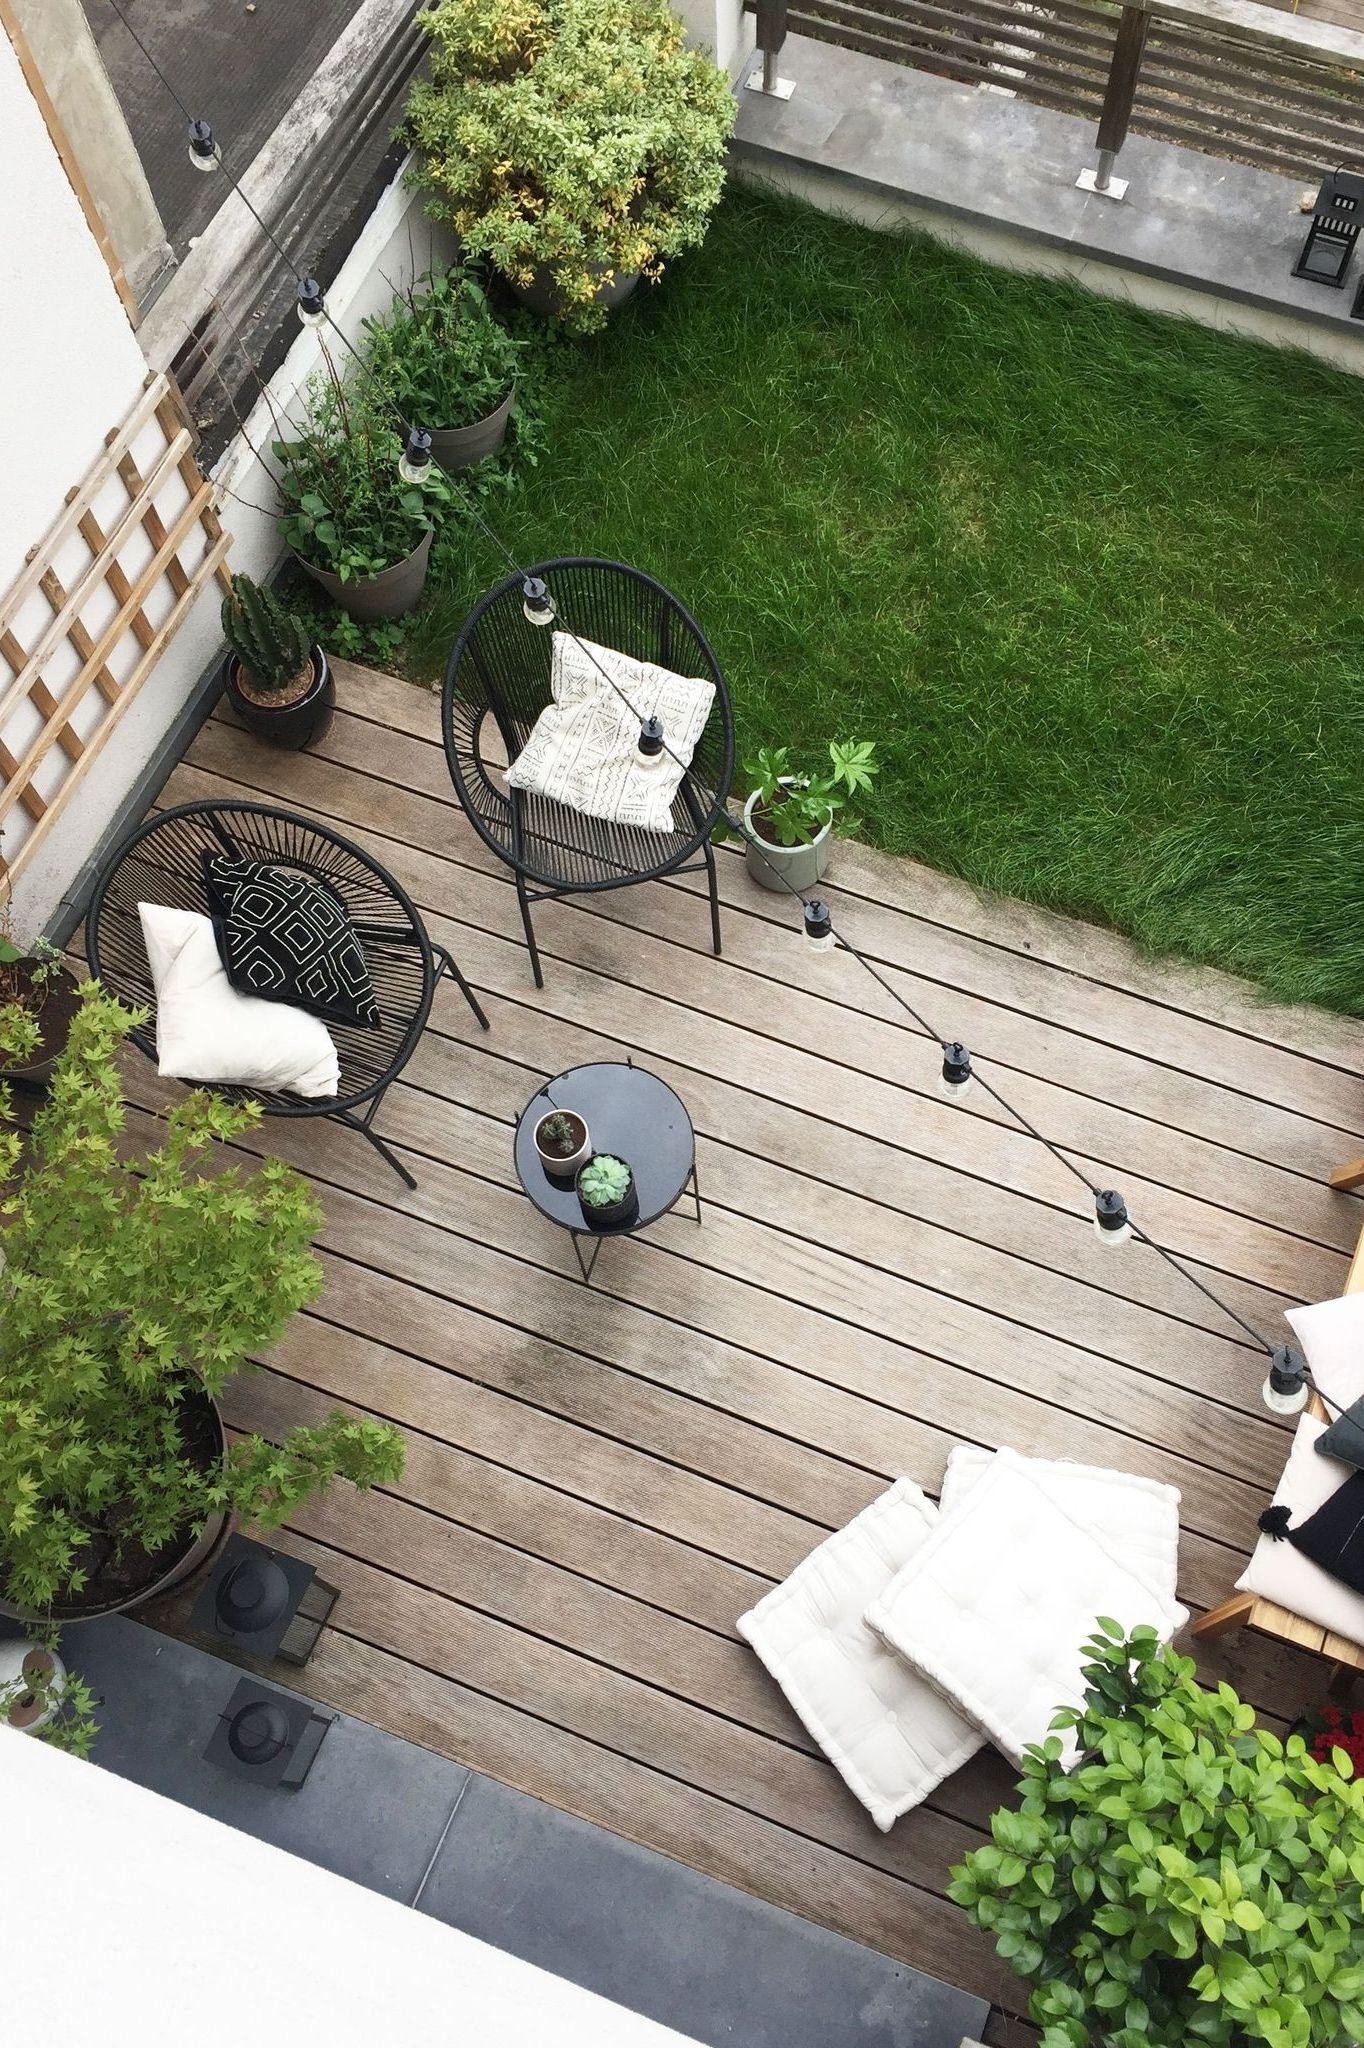 01 -Two distinct spaces for a small optimized yard